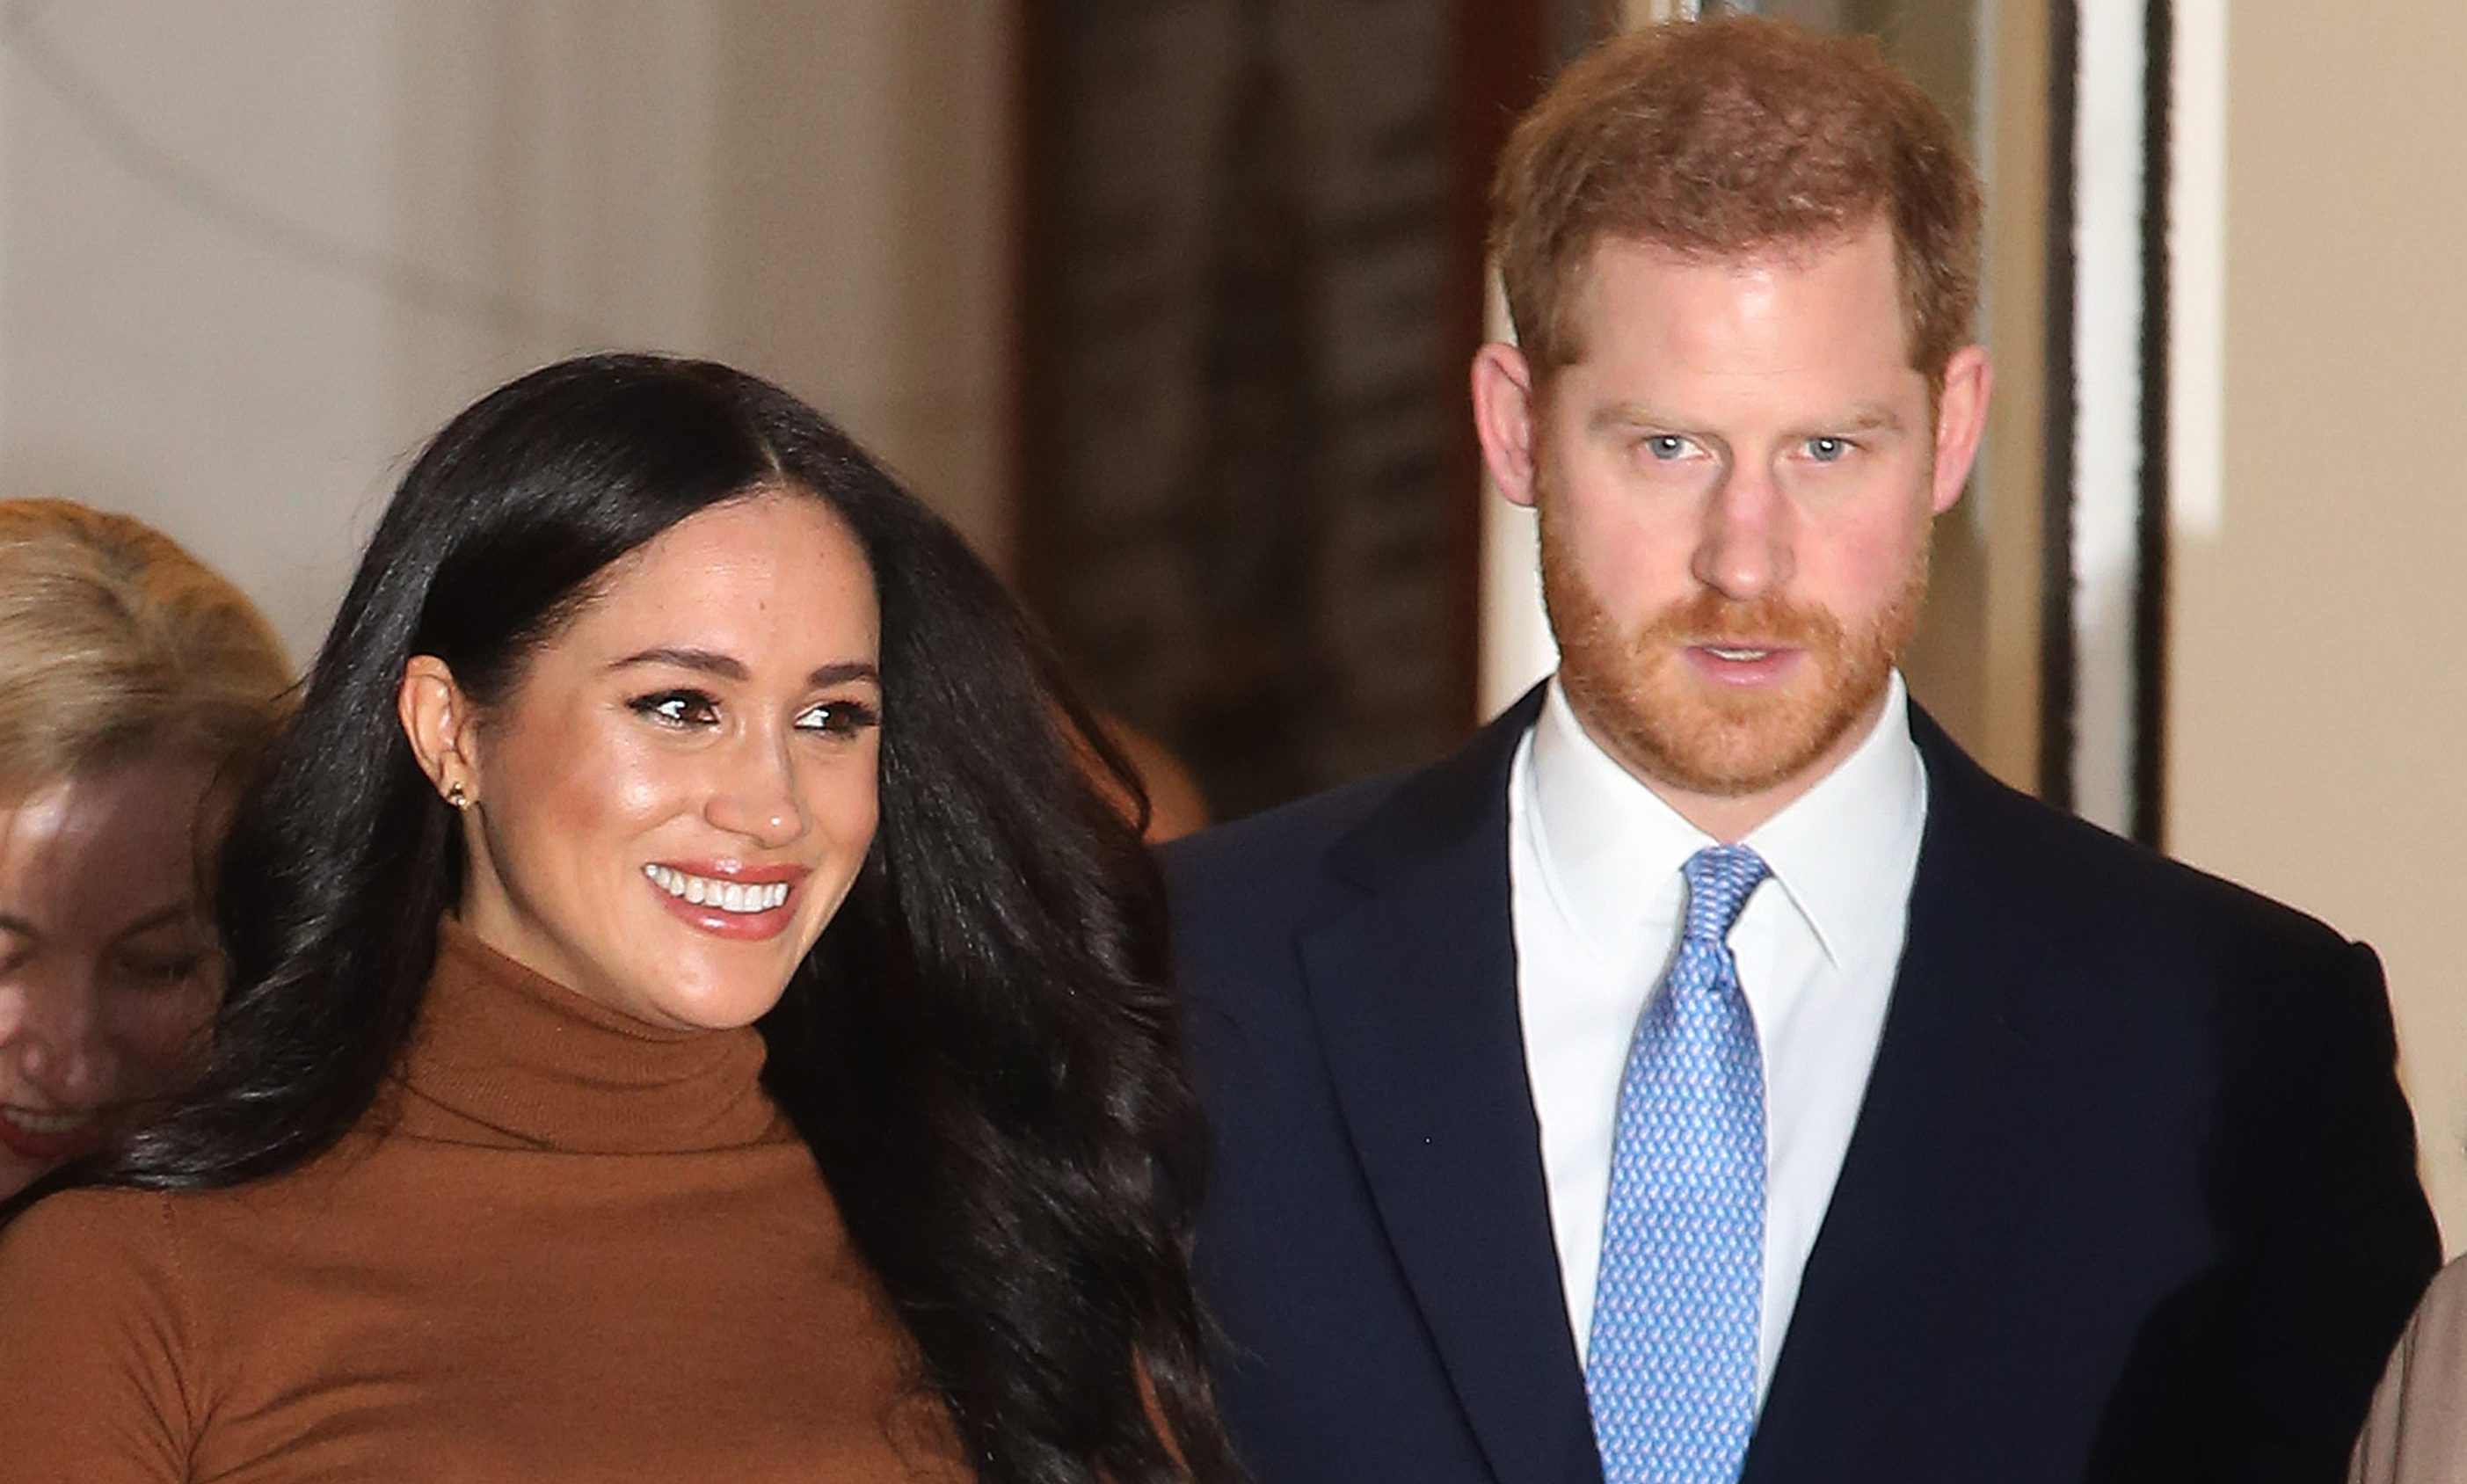 The 'real' reason behind Meghan and Harry's decision to quit the royal family 'revealed'